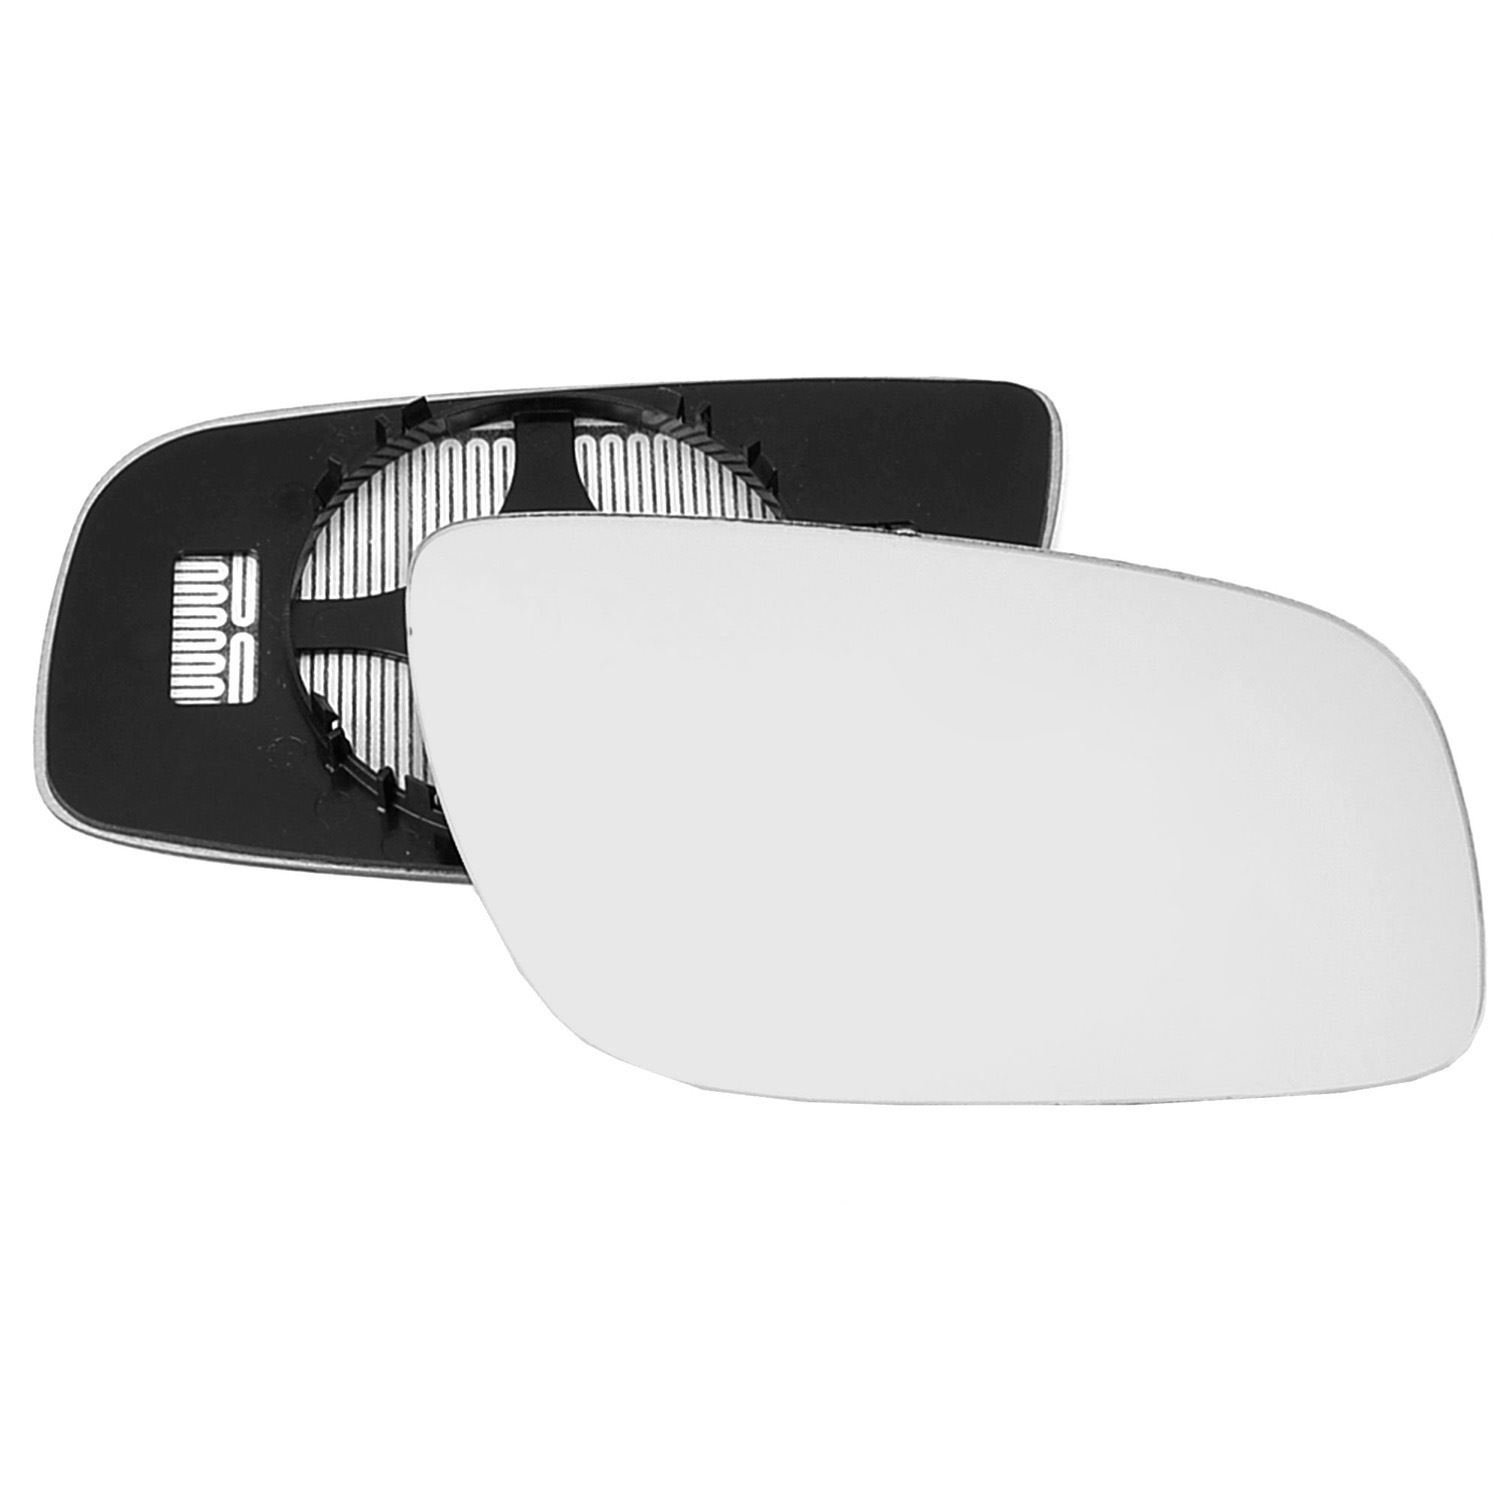 Driver right hand side Heated wing door Silver mirror glass with backing plate #C-SHY//R-MSEW21106 Clip On